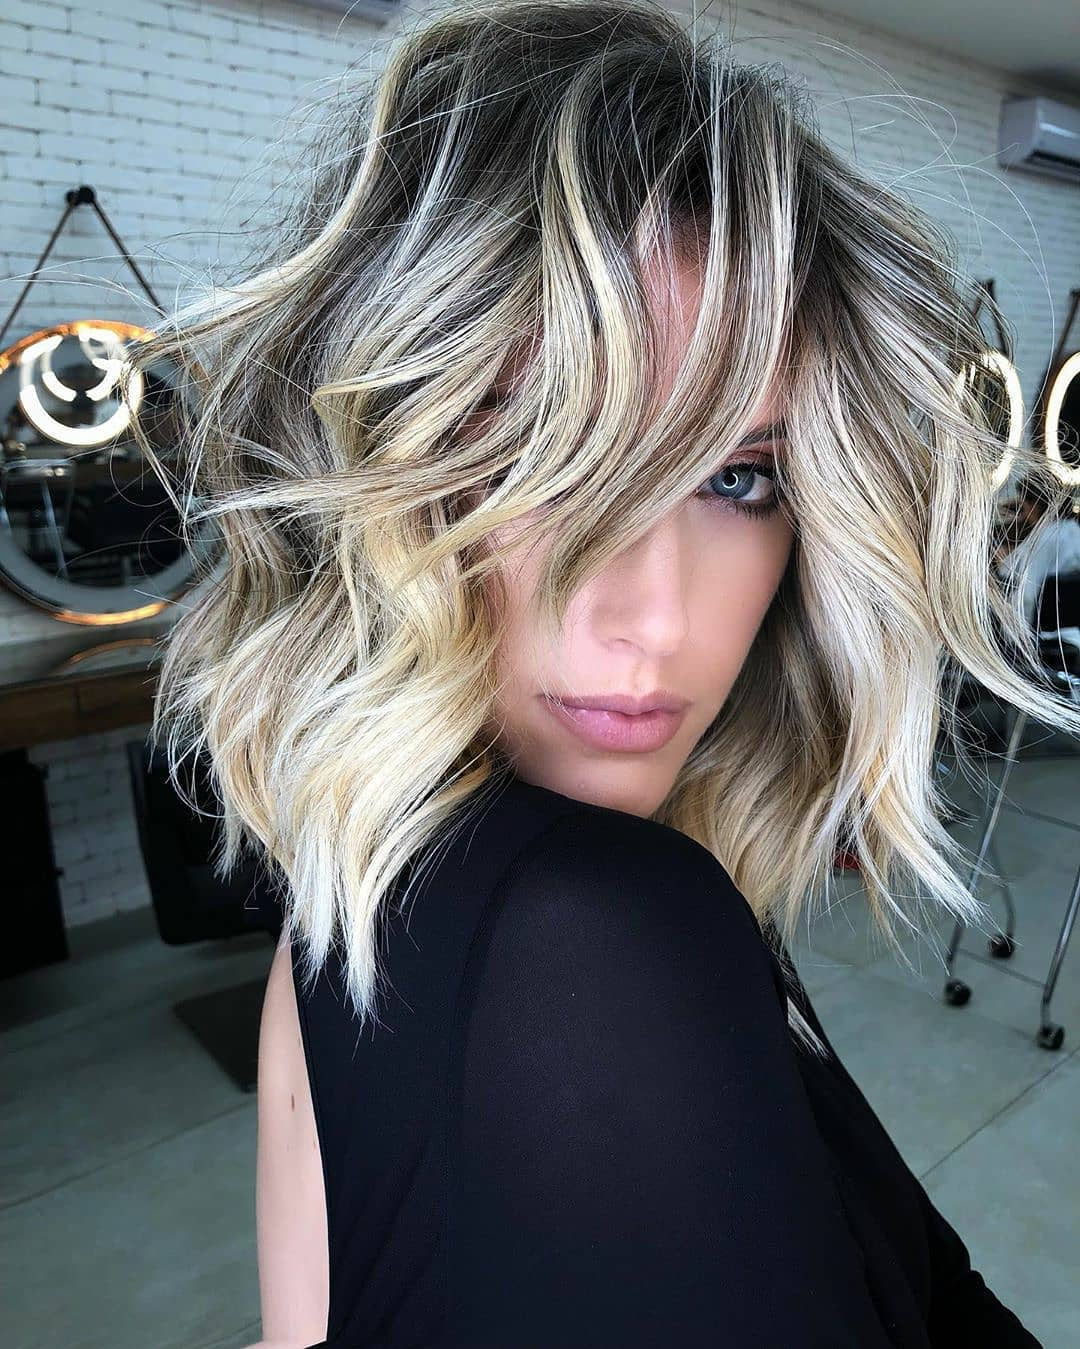 150 Honestly Easy hairstyle ideas for medium-length hair images 1